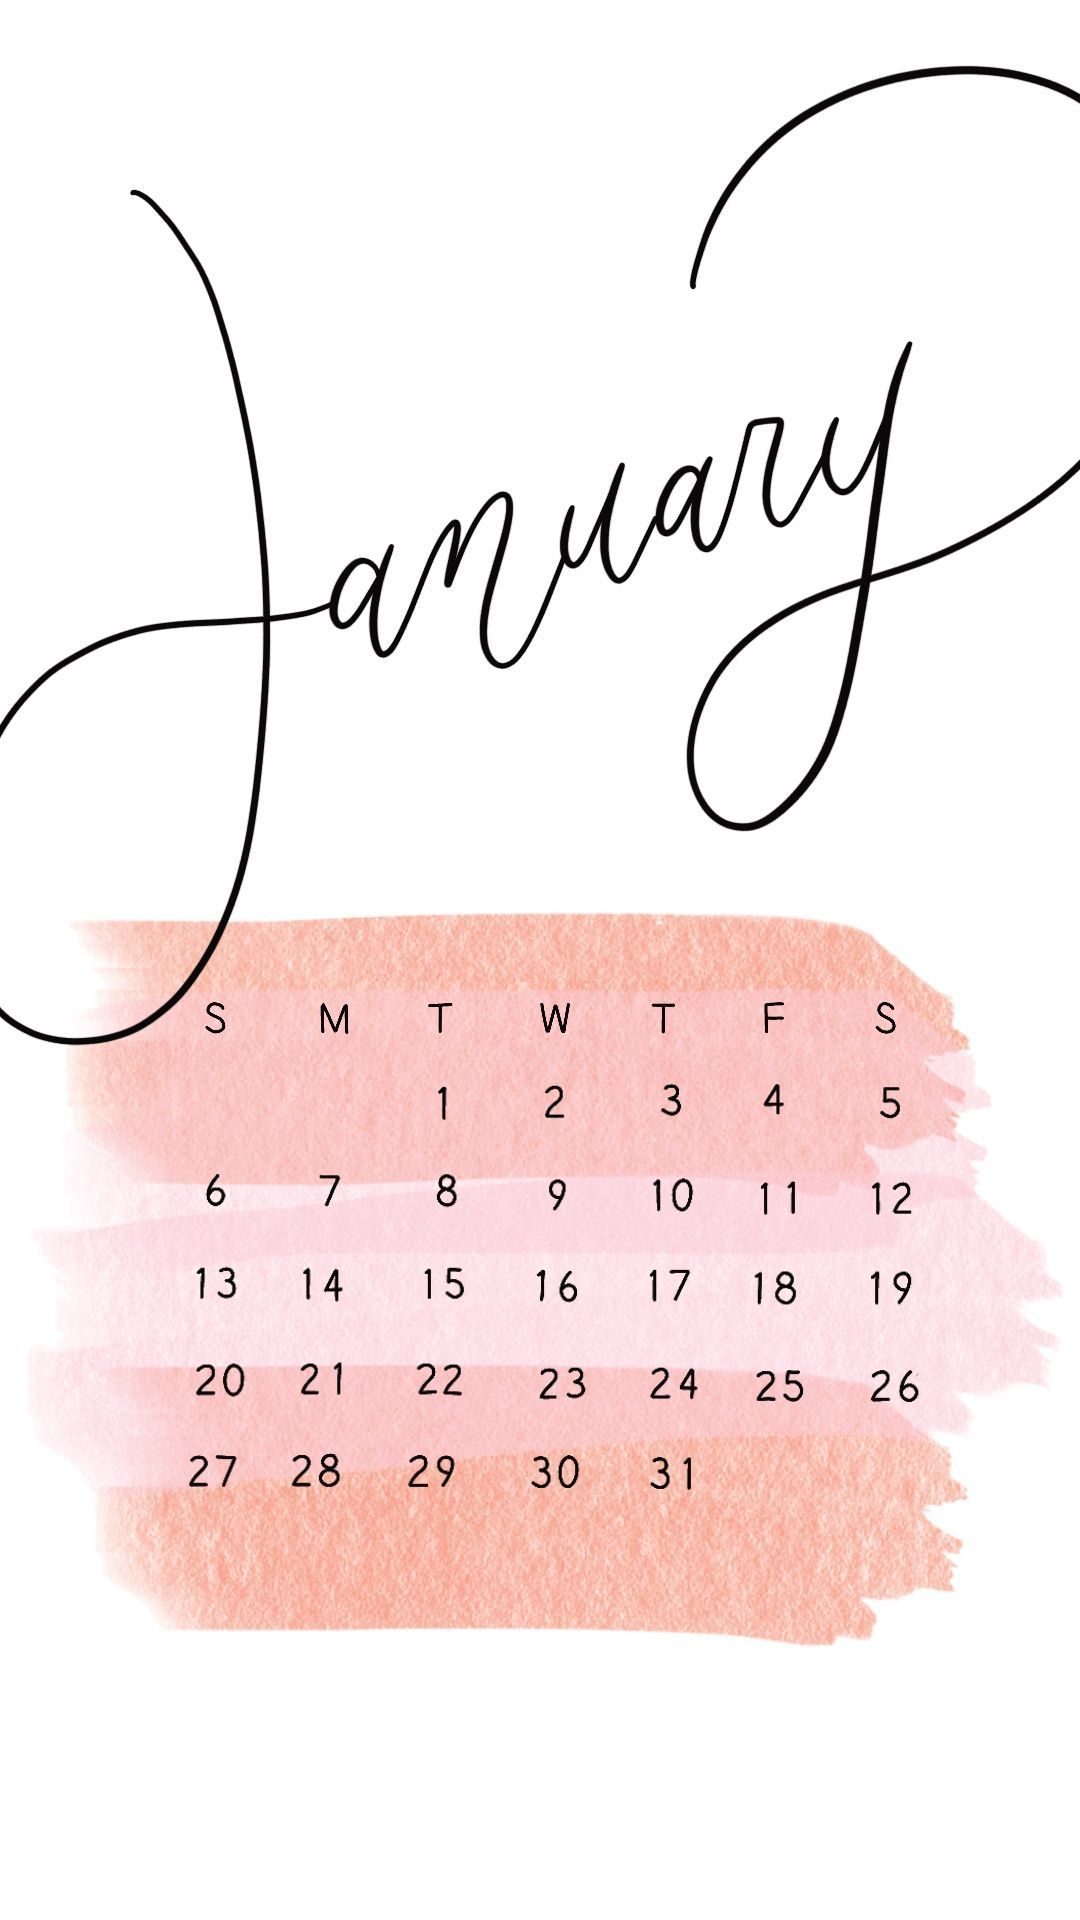 Pin By Amonah Raddadi On Wallpaper Backgrounds In 2020 intended for Studyblr Calendar 2020